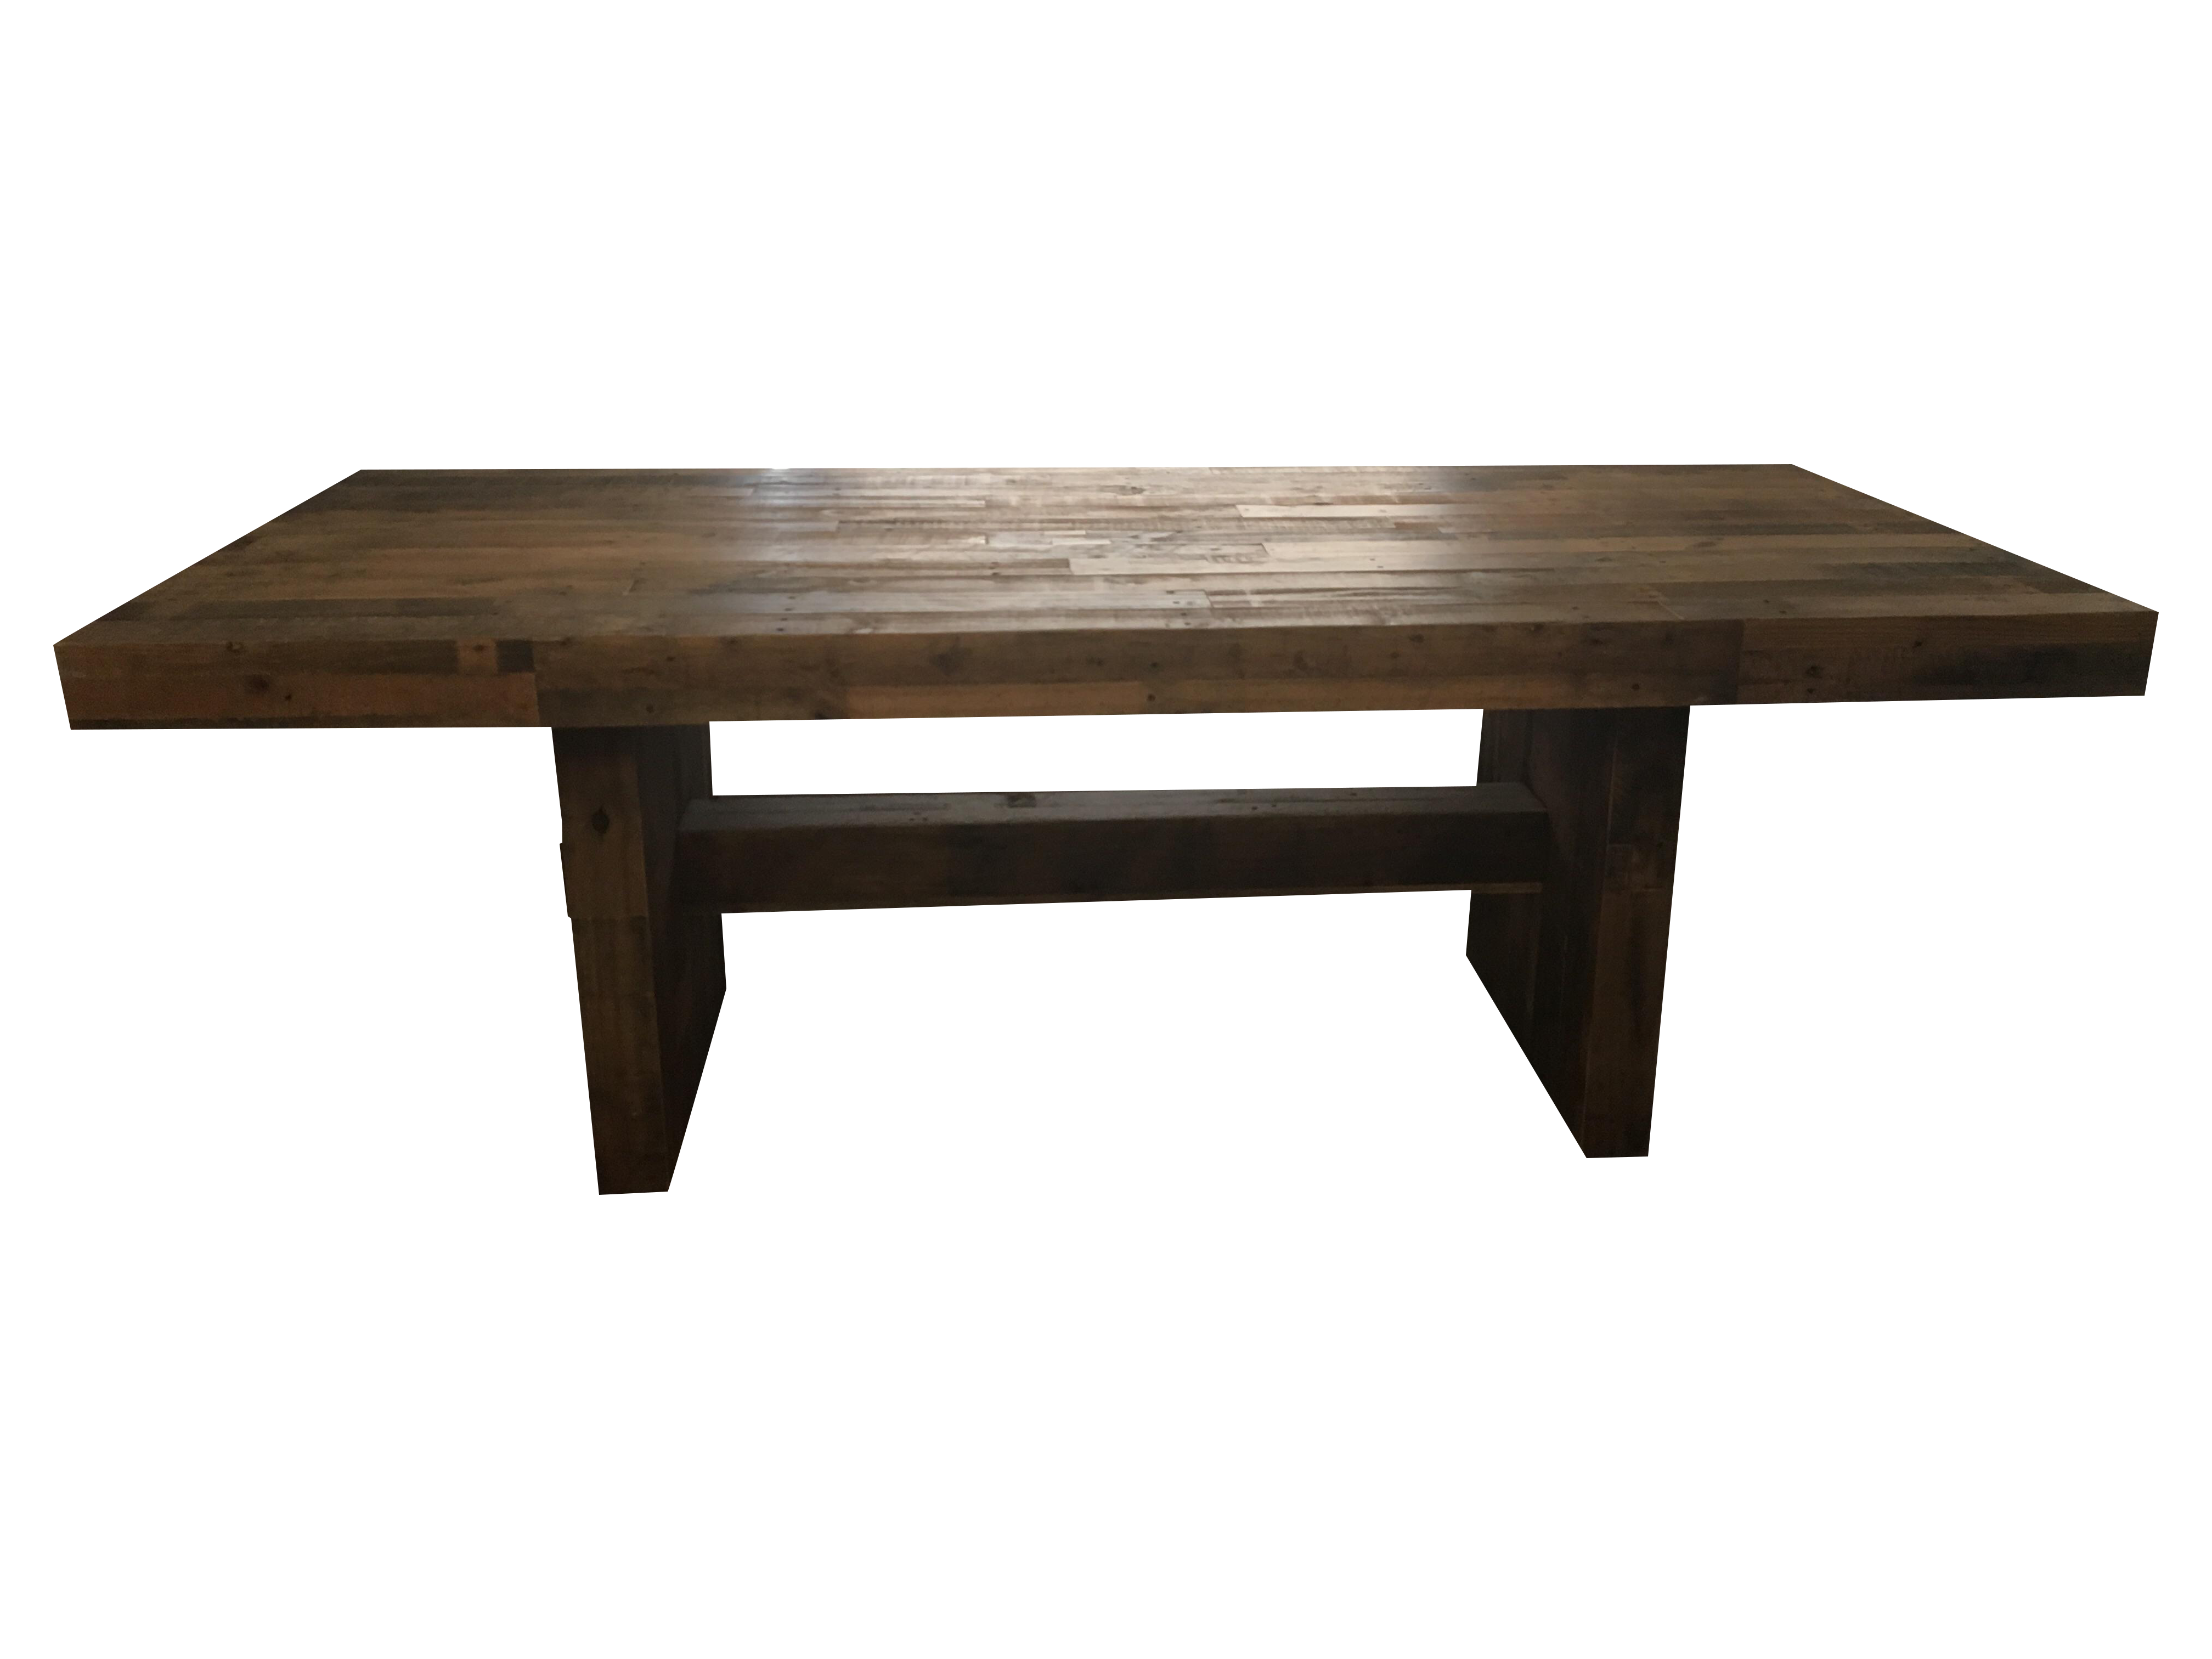 West Elm Emmerson Reclaimed Wood Dining Table Chairish : bf05e51d 4147 49ed a05a 77e8834ff580aspectfitampwidth640ampheight640 from www.chairish.com size 640 x 640 jpeg 19kB